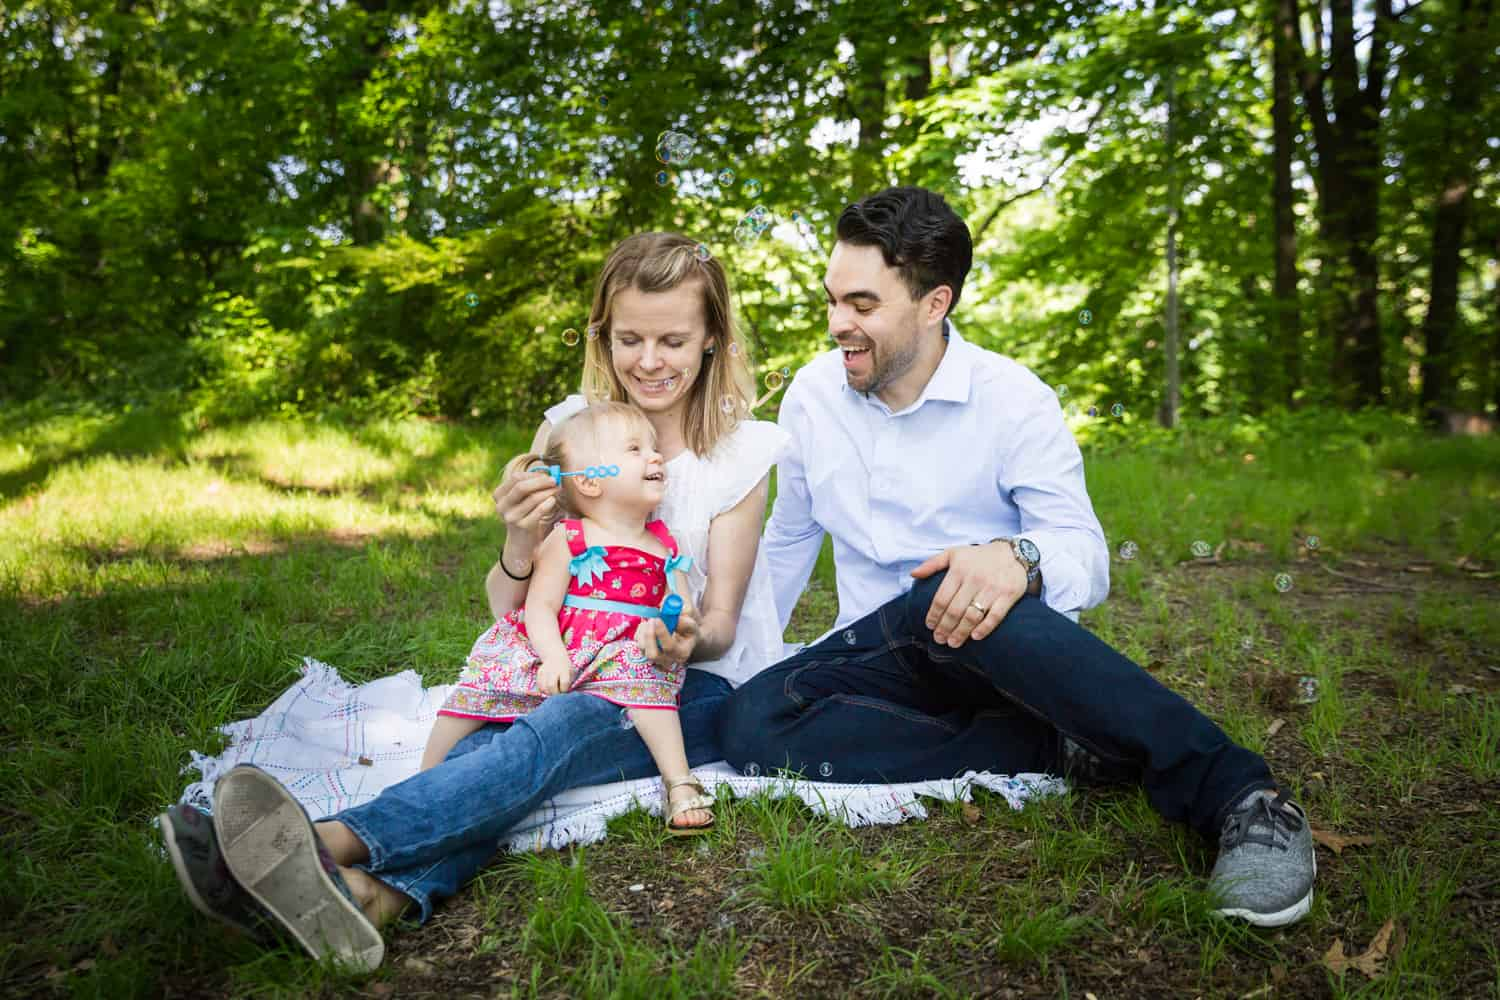 Parents and little girl blowing bubbles on blanket during a Forest Park family photo shoot